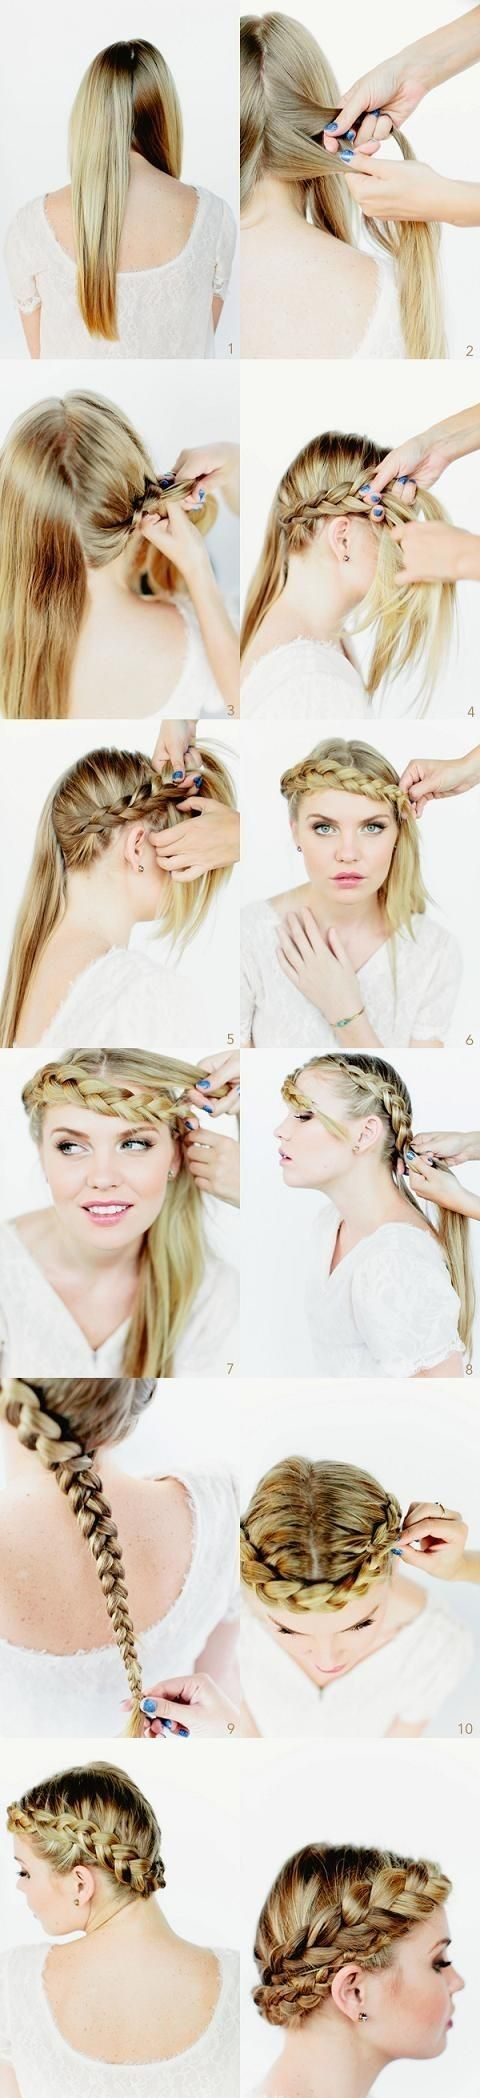 Gorgeous Crown Braided Hairstyles Tutorials: Long Hairstyle